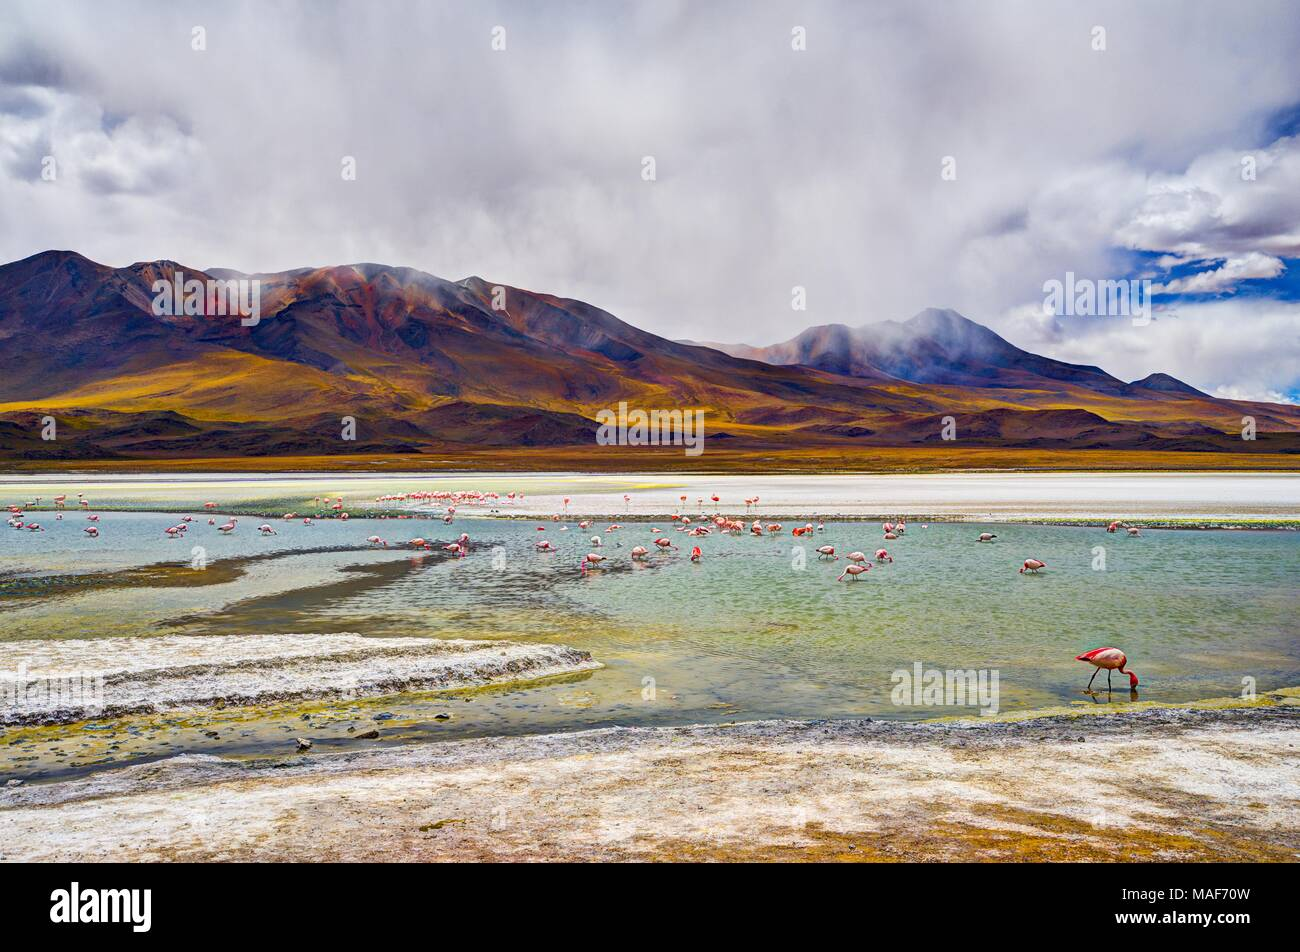 Lagune de l'altiplano en Bolivie, Southamerica Photo Stock